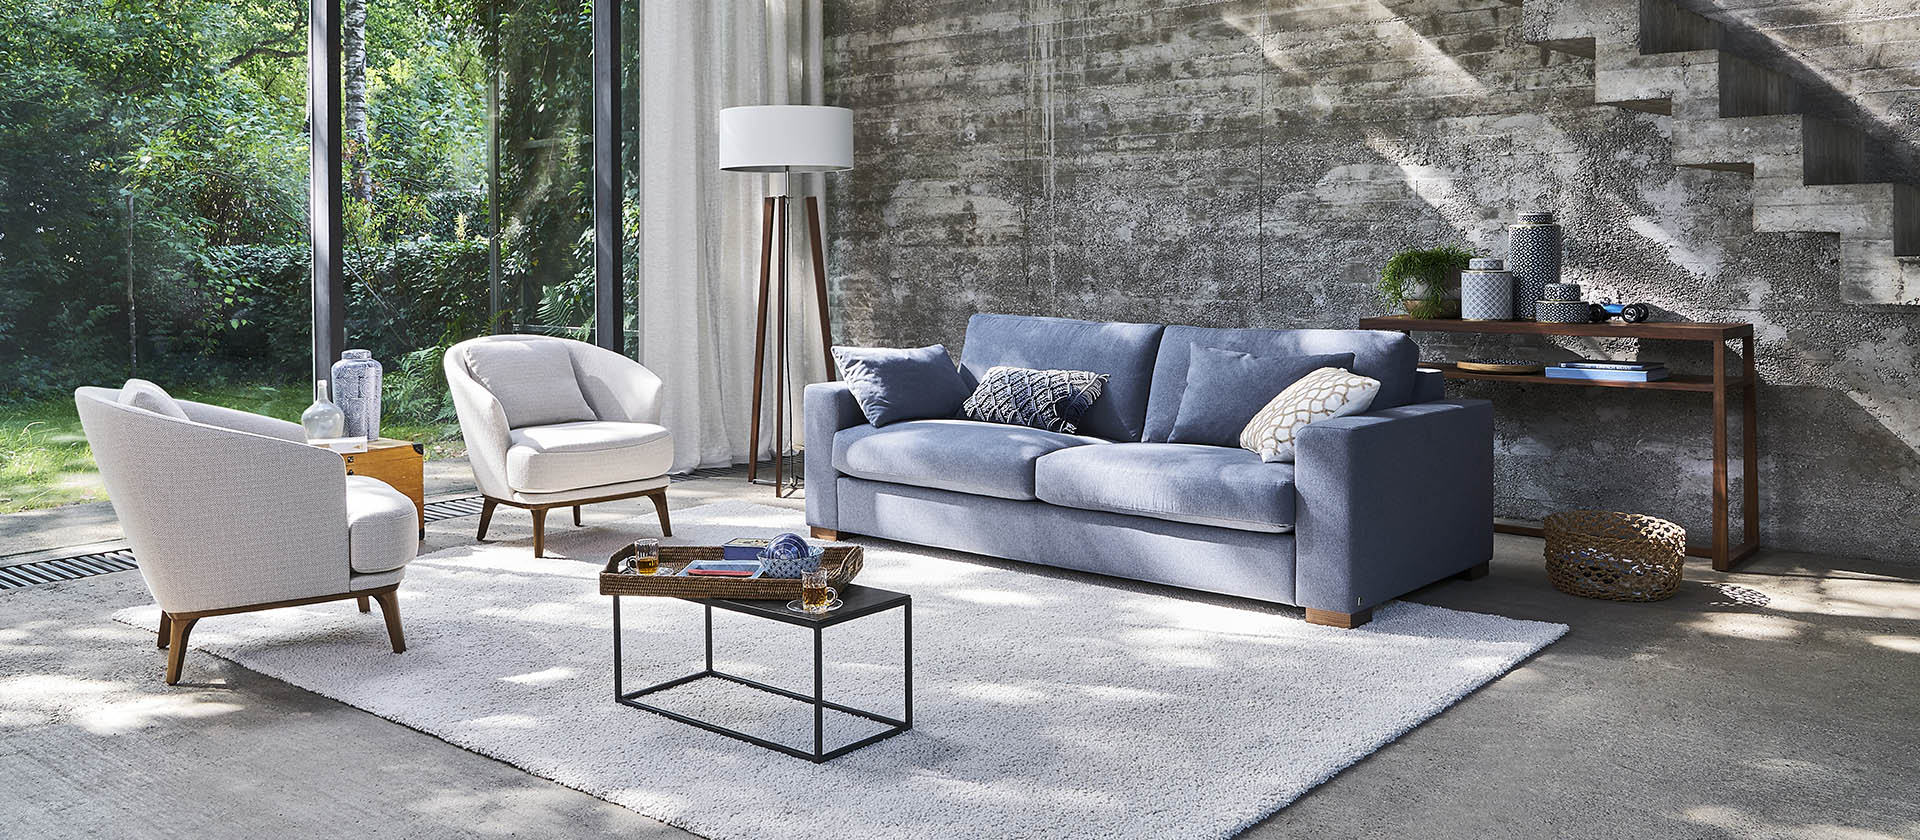 Design Attack Schlafsofas Mbel Trsser Awesome The Tendence At A Glance With Mbel Trsser